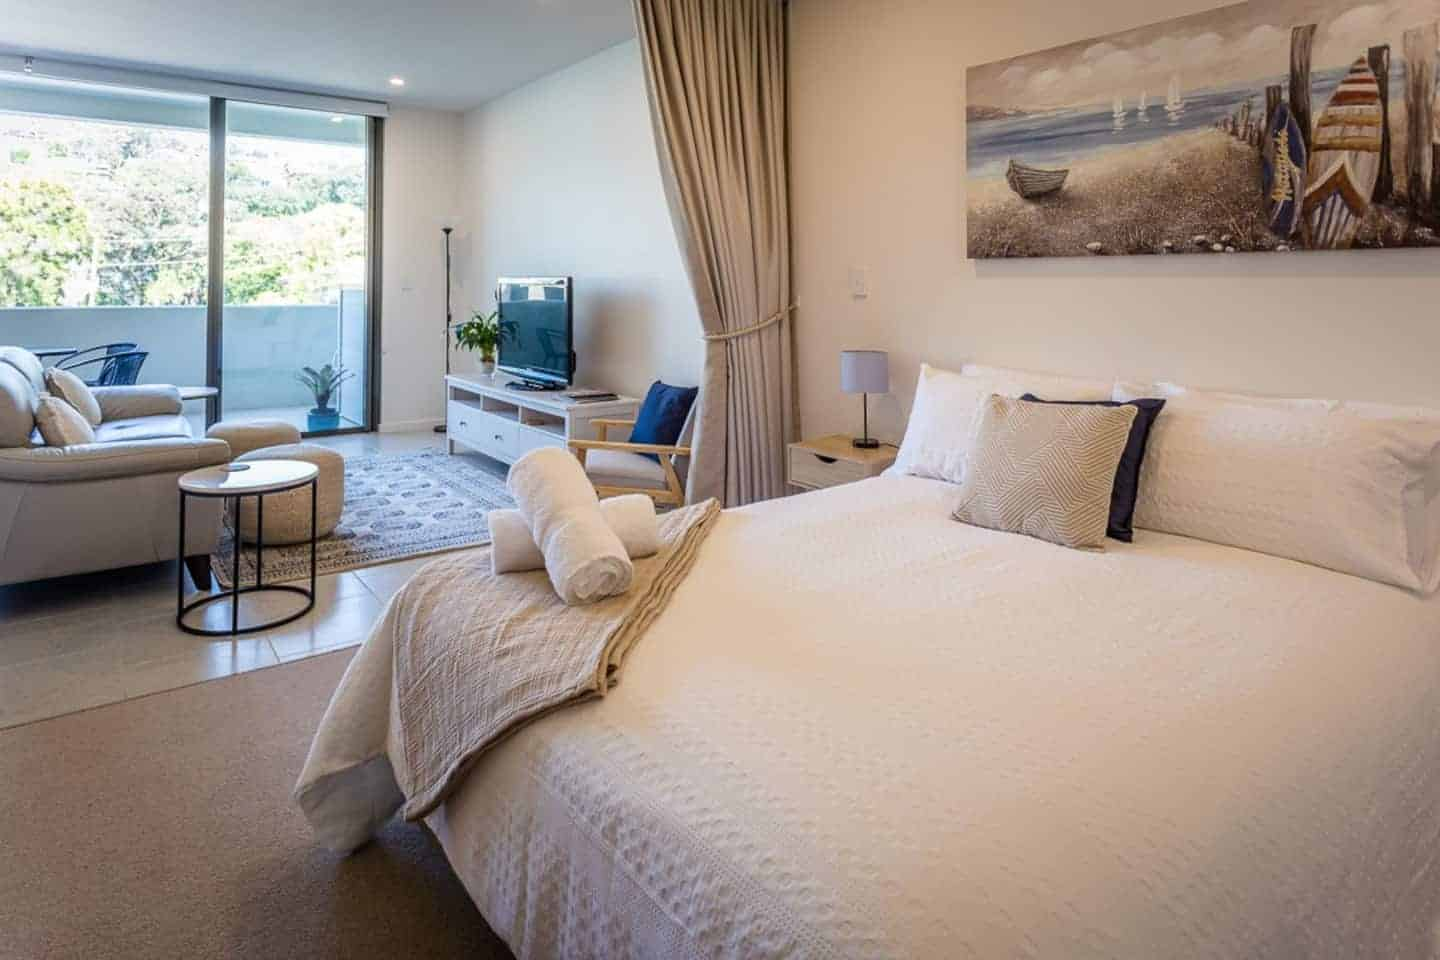 Photo of a top airbnb terrigal titled: Beach, Cafes, & Restaurants within a short walk. relevant to terrigal holiday rental accomodation